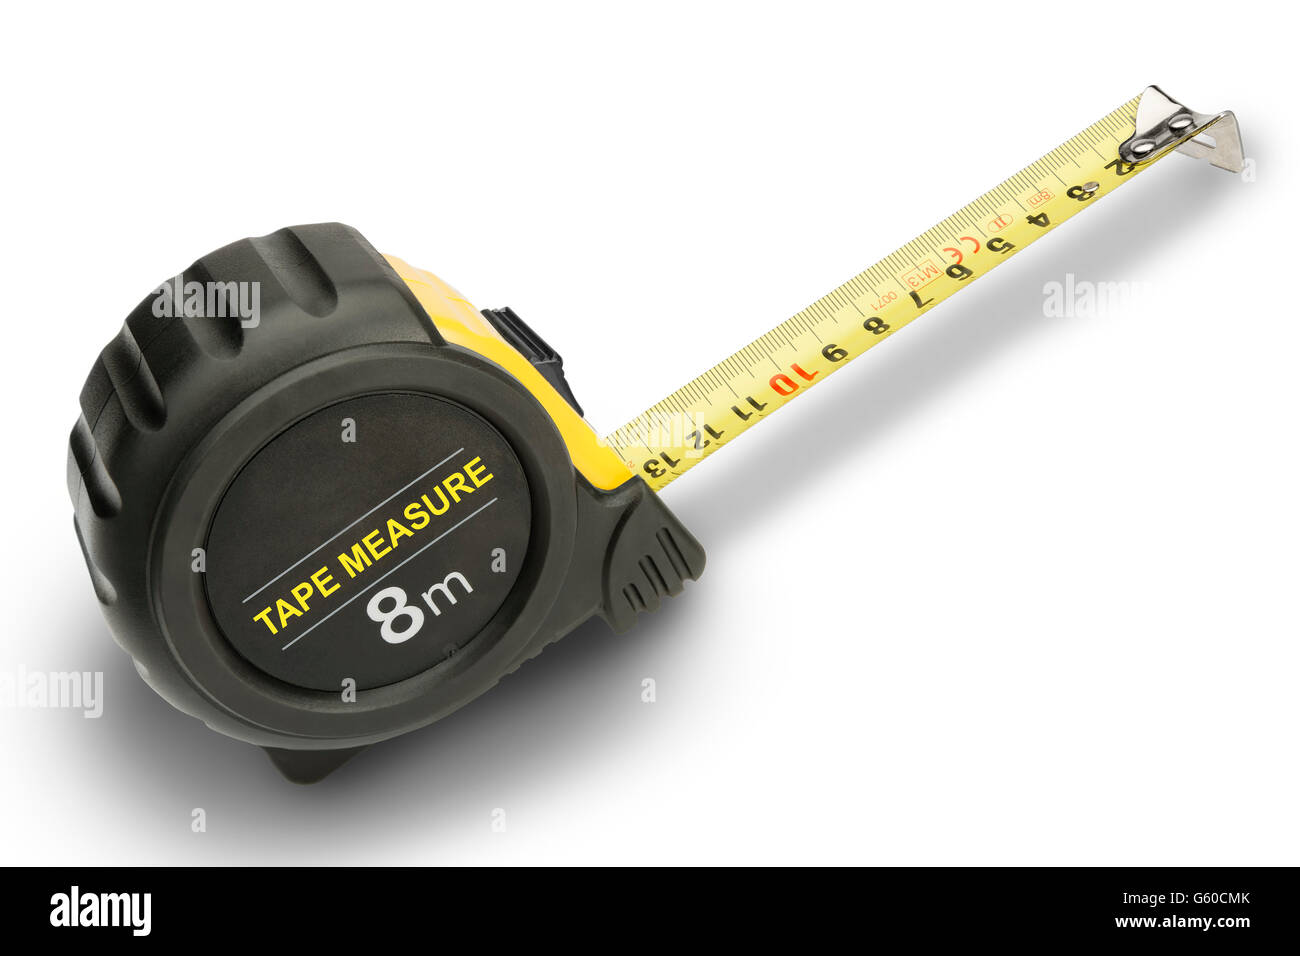 Working construction tape measure in metric with no branding - Stock Image